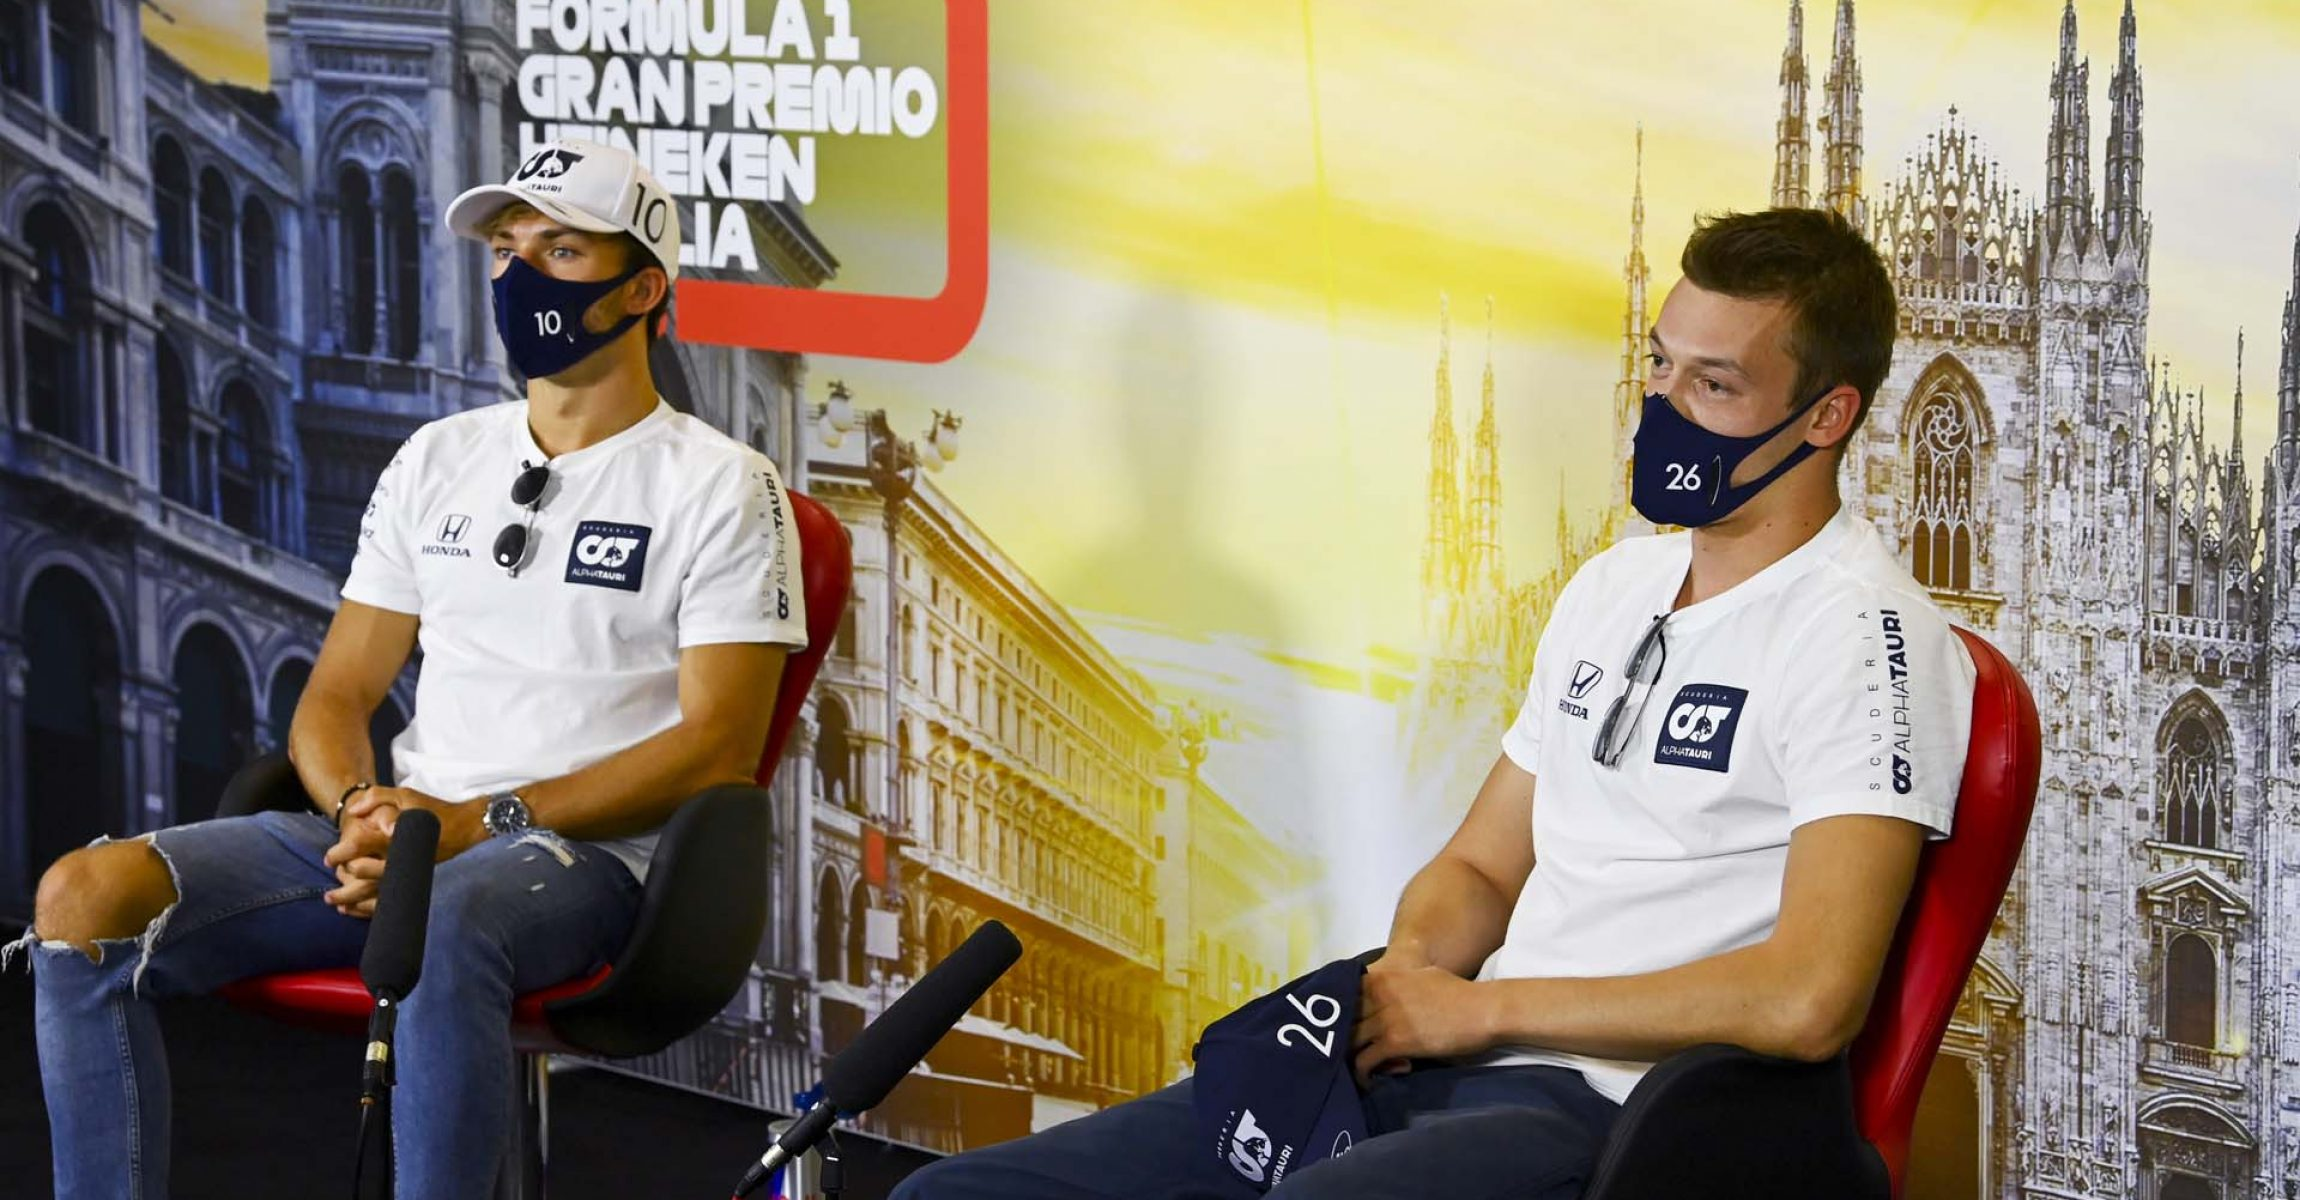 MONZA, ITALY - SEPTEMBER 03: Pierre Gasly of France and Scuderia AlphaTauri and Daniil Kvyat of Russia and Scuderia AlphaTauri talk in the Drivers Press Conference during previews ahead of the F1 Grand Prix of Italy at Autodromo di Monza on September 03, 2020 in Monza, Italy. (Photo by Mark Sutton/Pool via Getty Images)